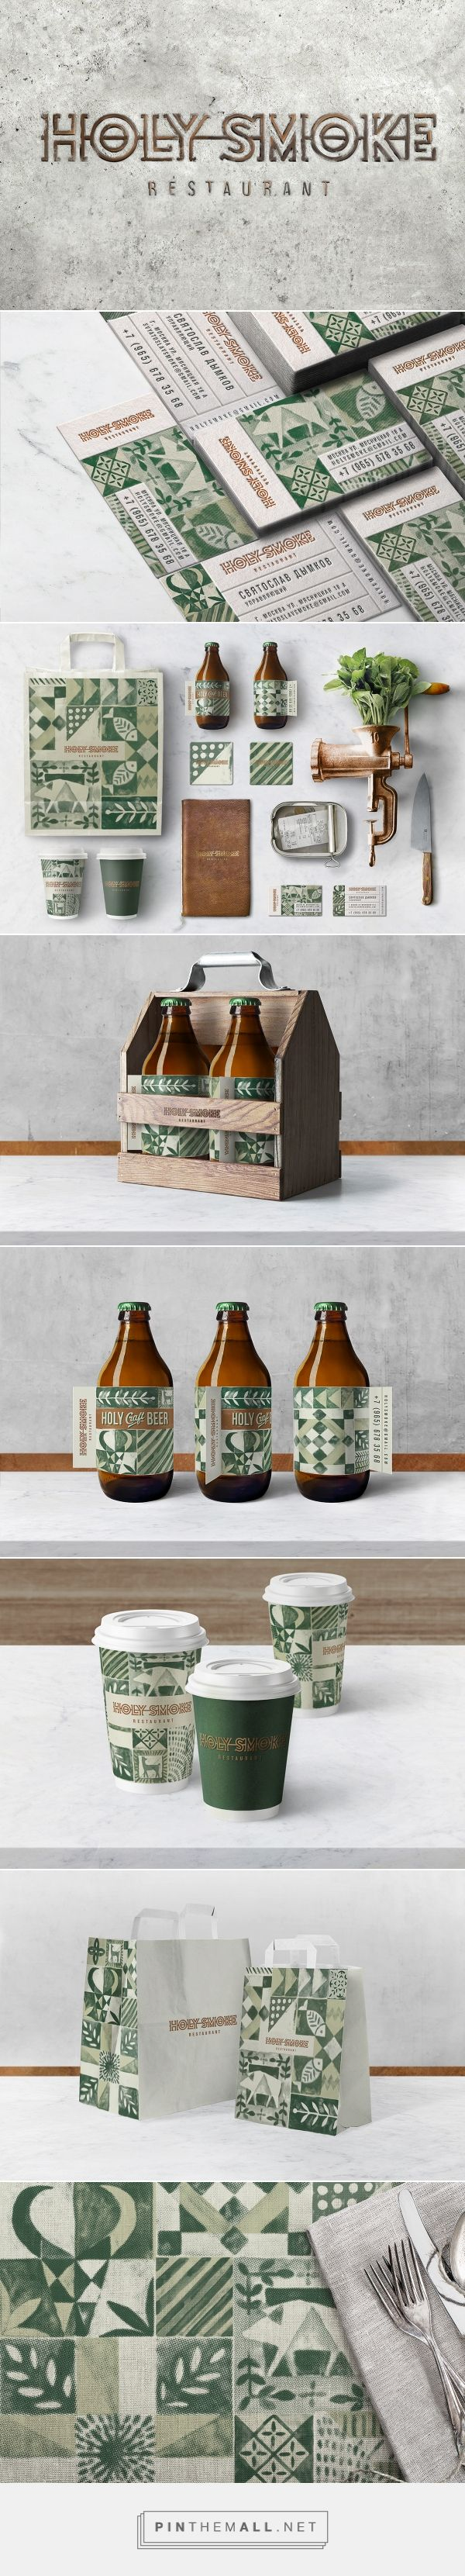 HOLY SMOKE RESTAURANT by Bureau Bumblebee on Behance curated by Packaging Diva PD. This is gorgeous identity packaging branding.